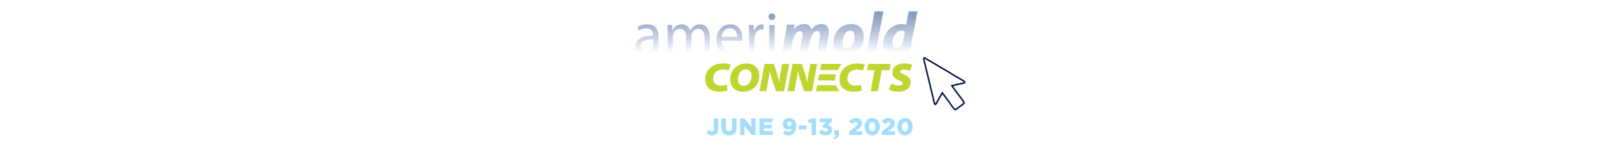 Amerimold Connects 2020 logo